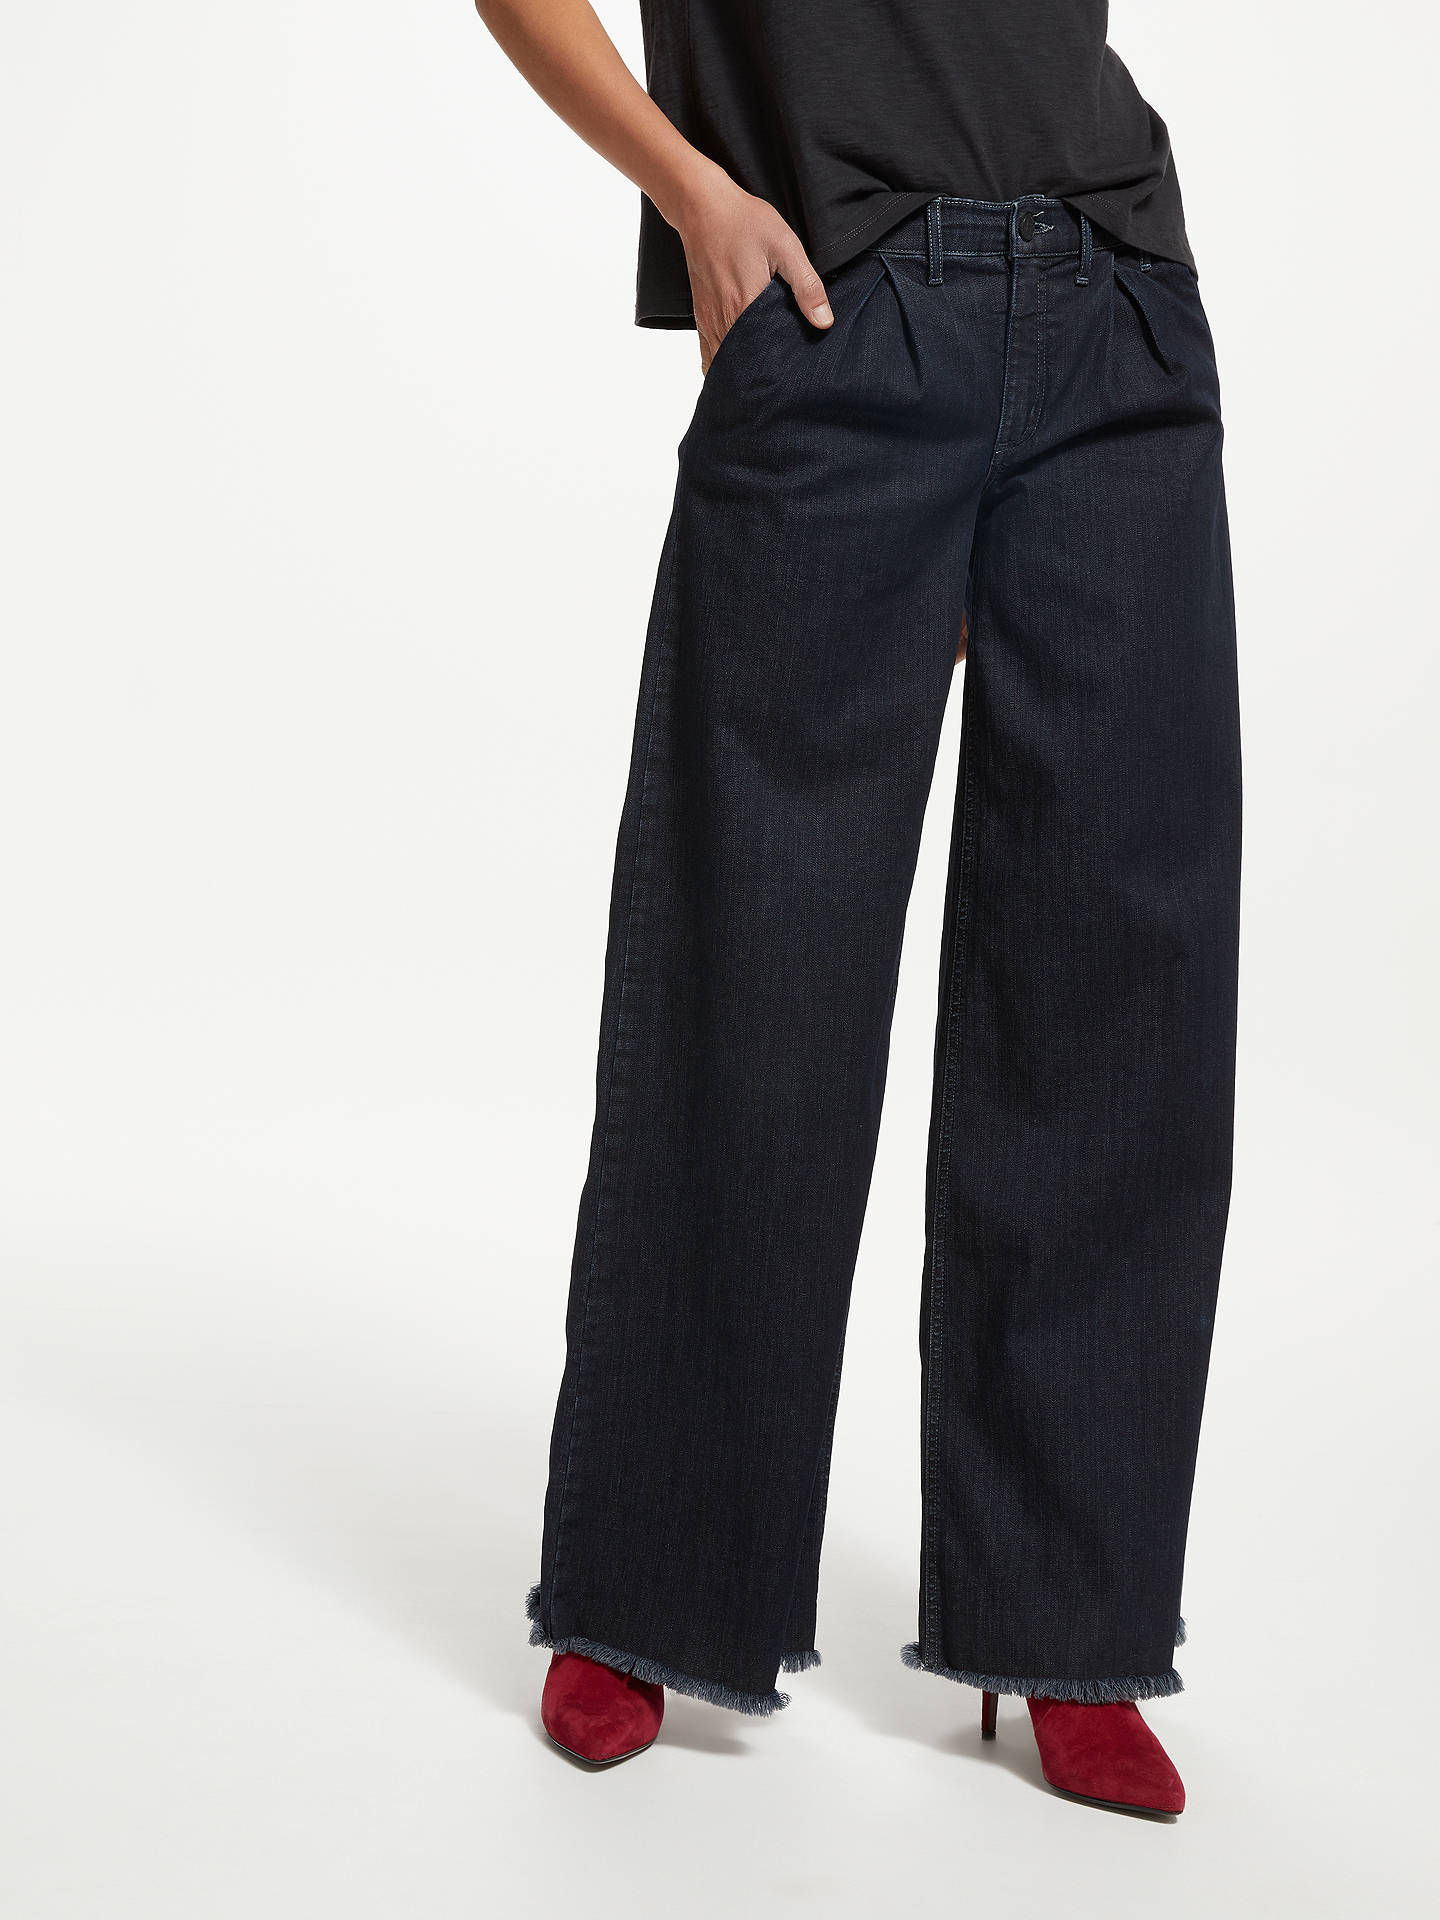 BuyAND/OR Pleat Front Wide Leg Jeans, Ink Blue, 26 Online at johnlewis.com